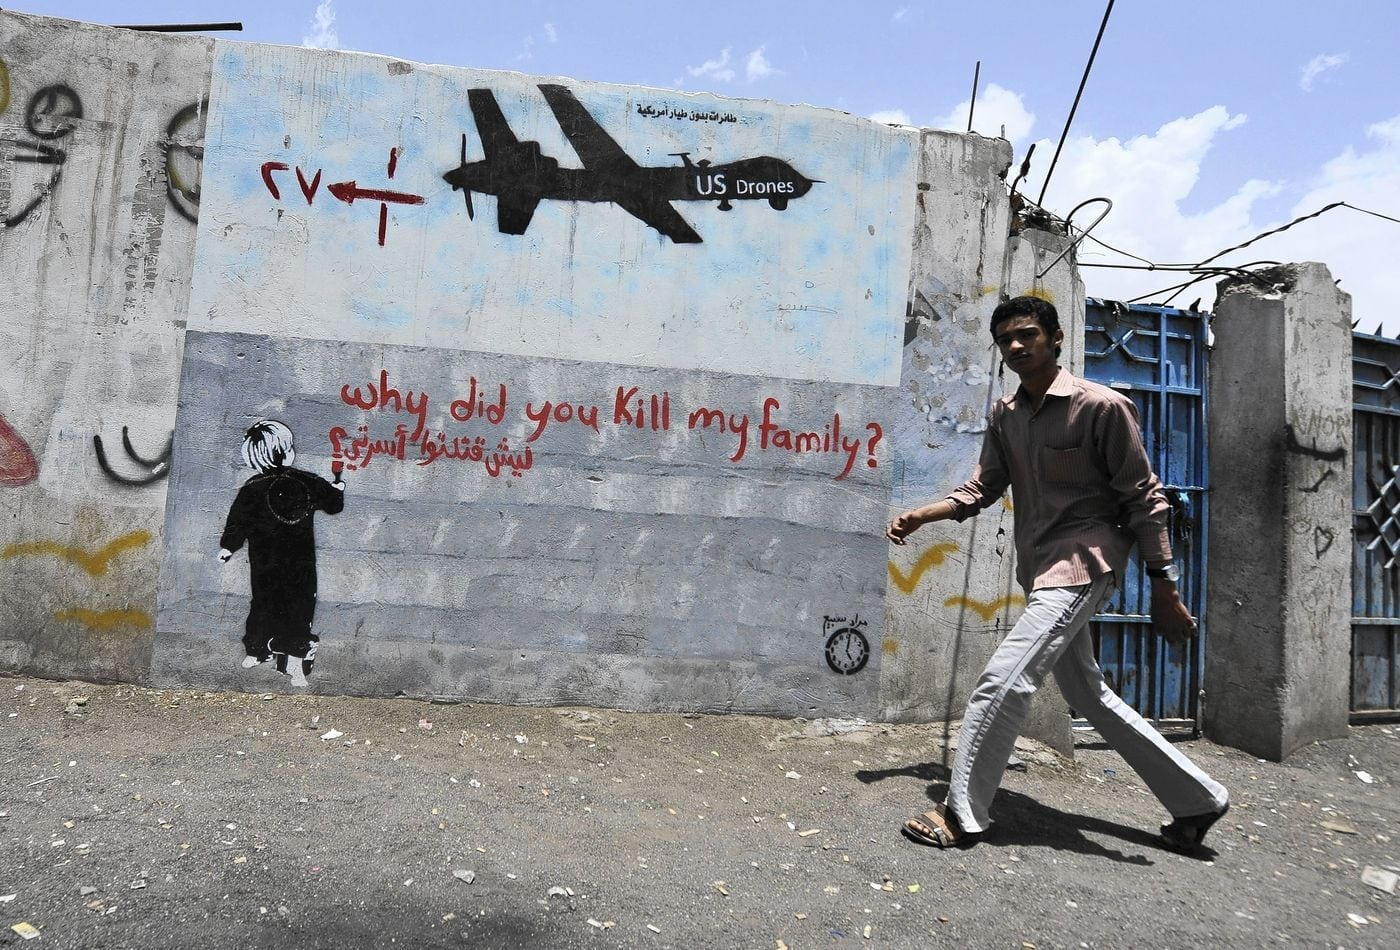 New Civil War: photo of graffiti protesting murder by US drones in Sana, Yemen.